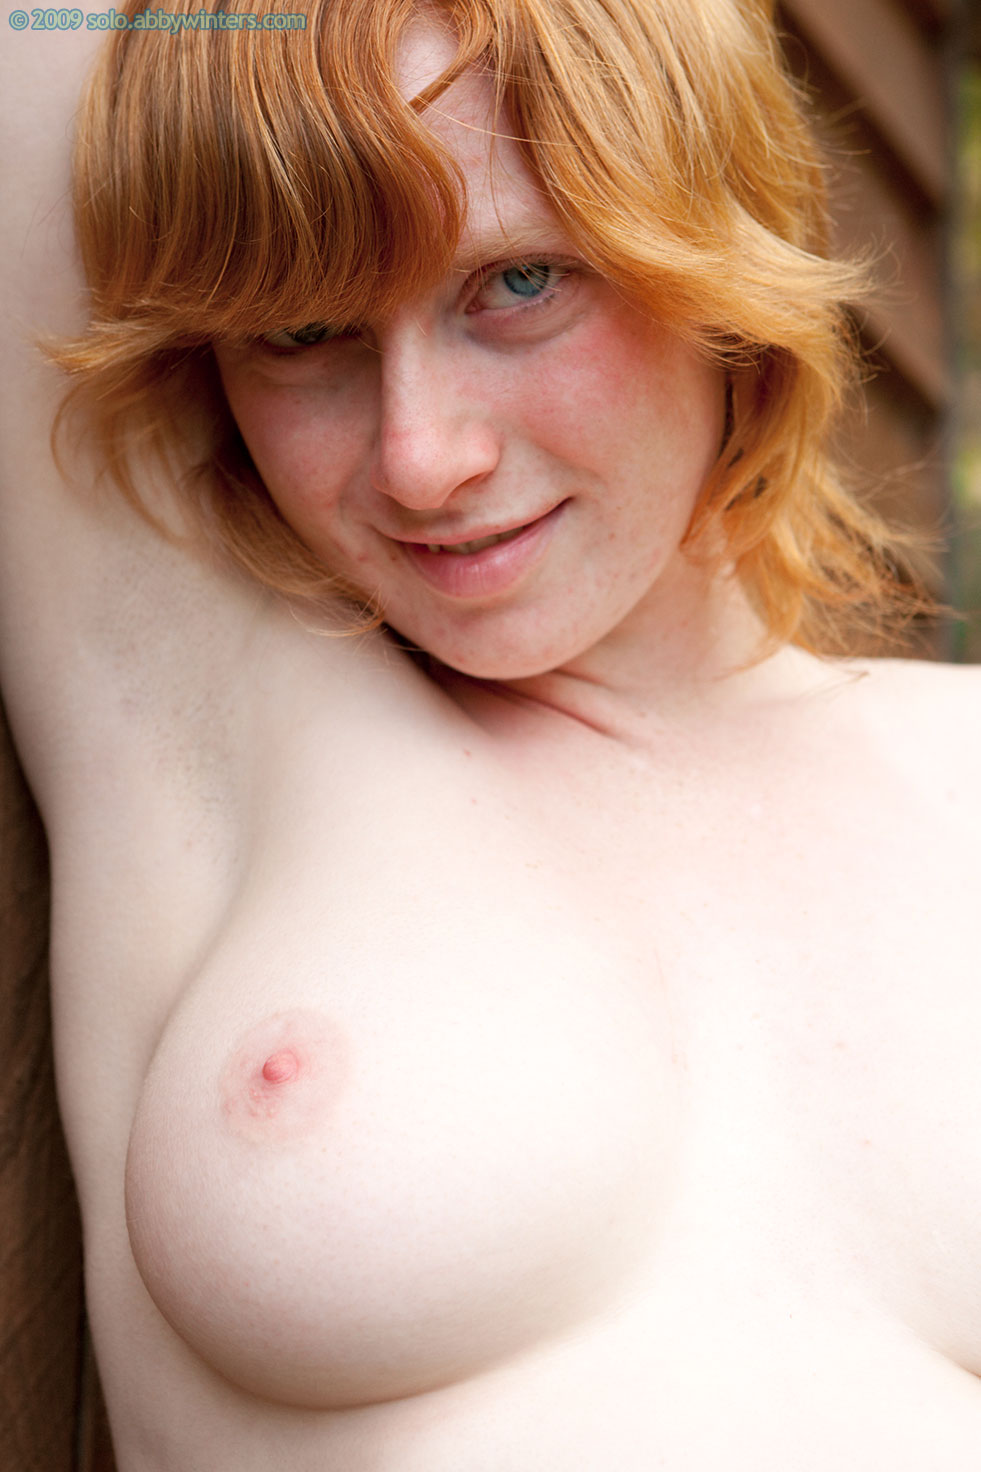 Sorry, Pale hairy redhead fucking simply excellent